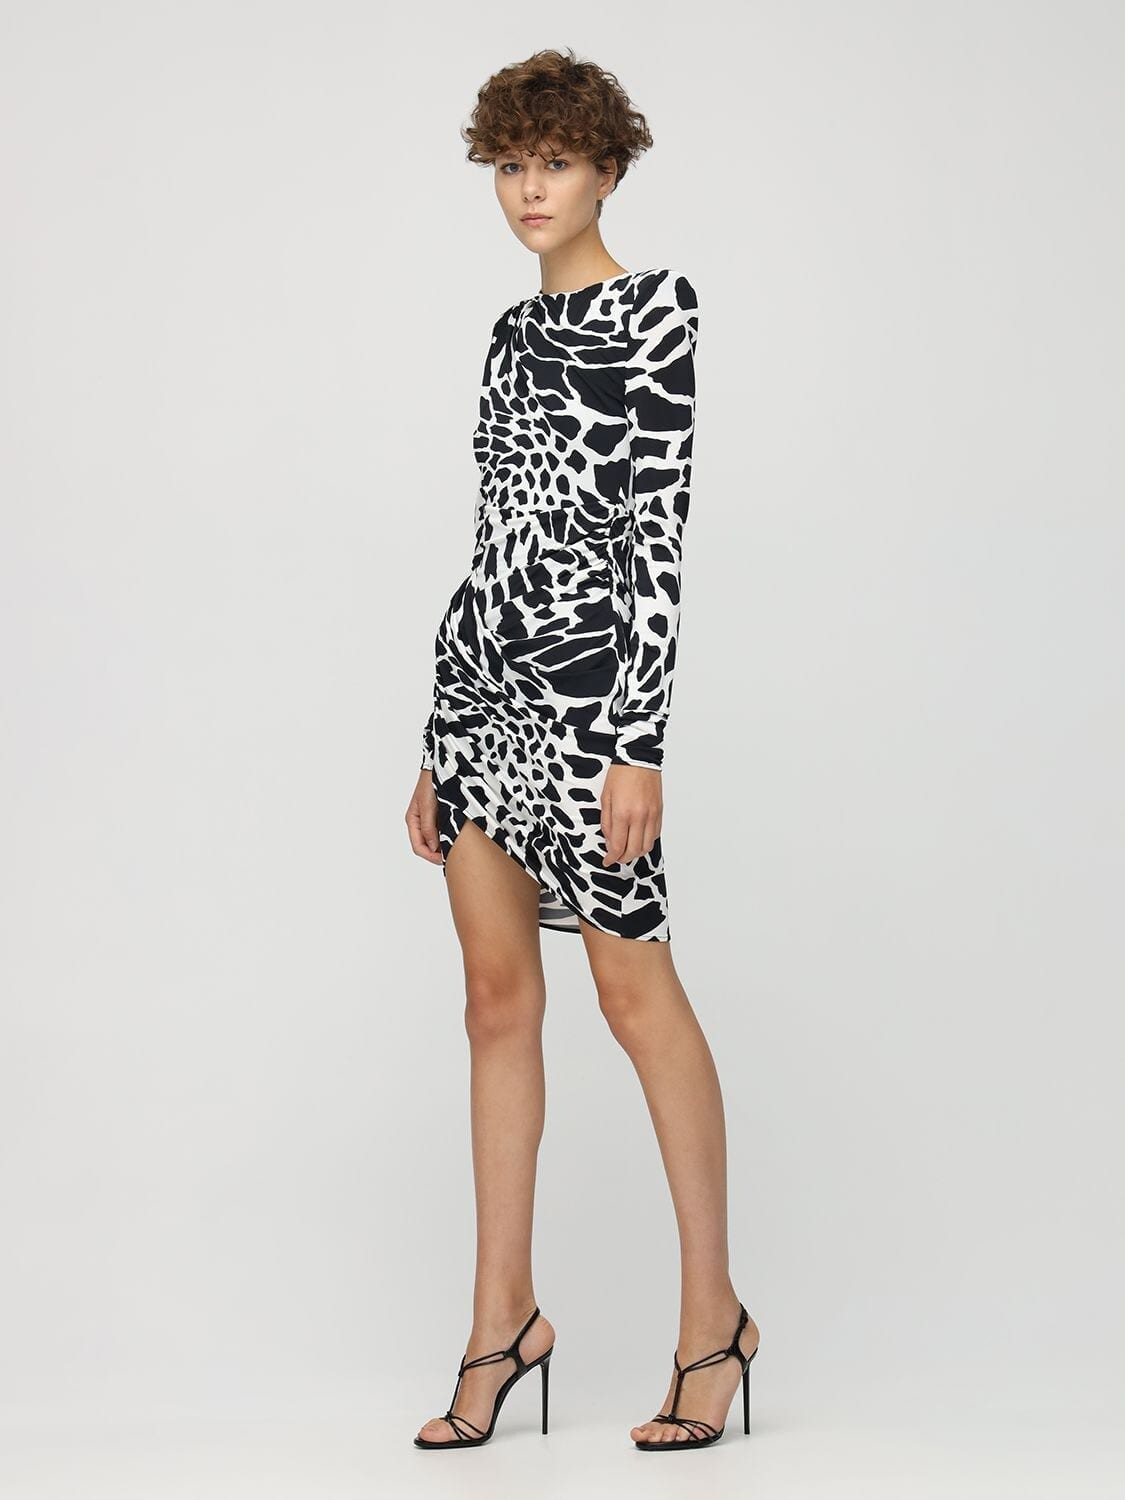 ALEXANDRE VAUTHIER Giraffe Print Stretch Jersey Mini Dress